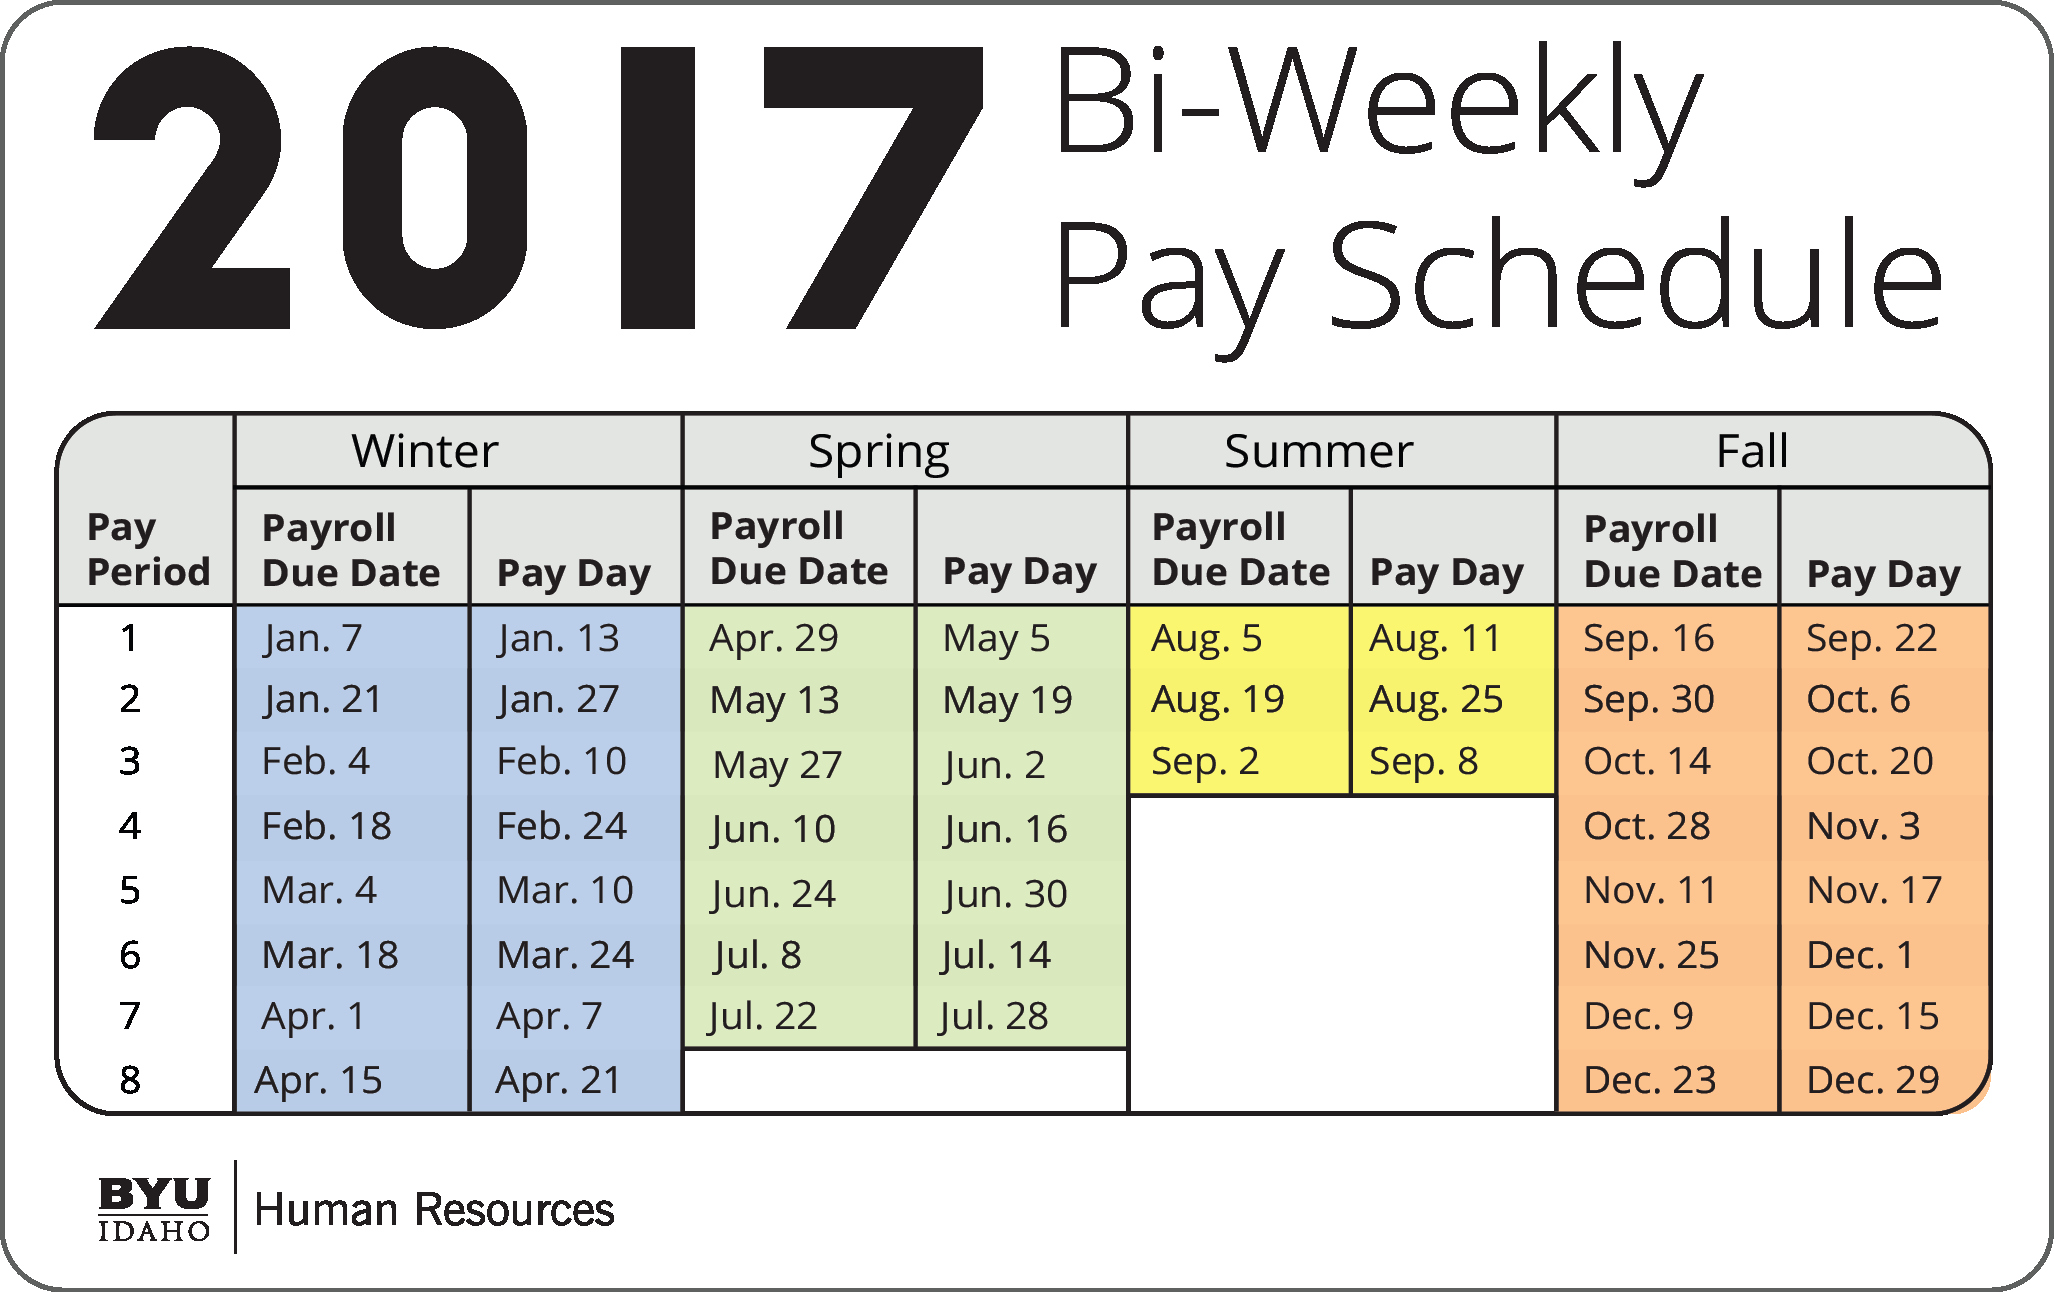 Biweekly Pay Schedule Template Inspirational List Of Synonyms and Antonyms Of the Word Biweekly